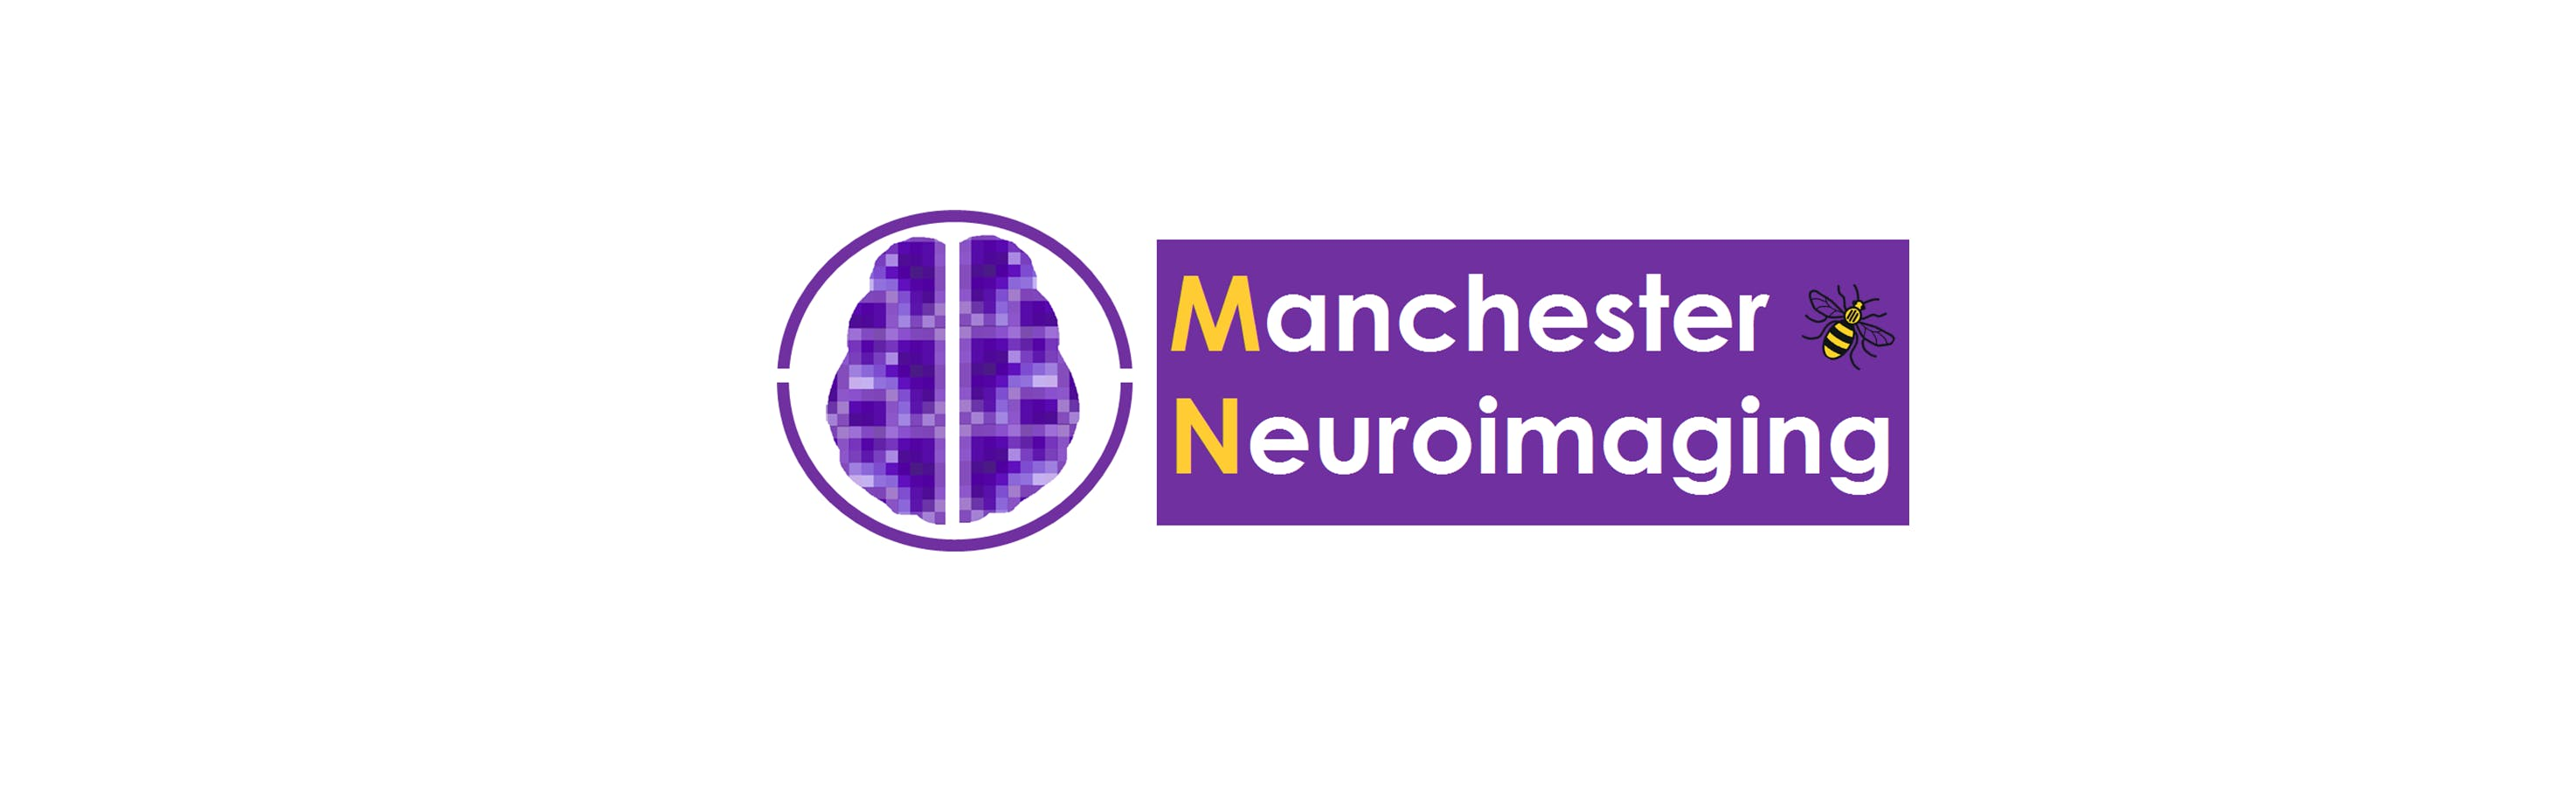 Manchester Neuroimaging Analysis Course - MRS